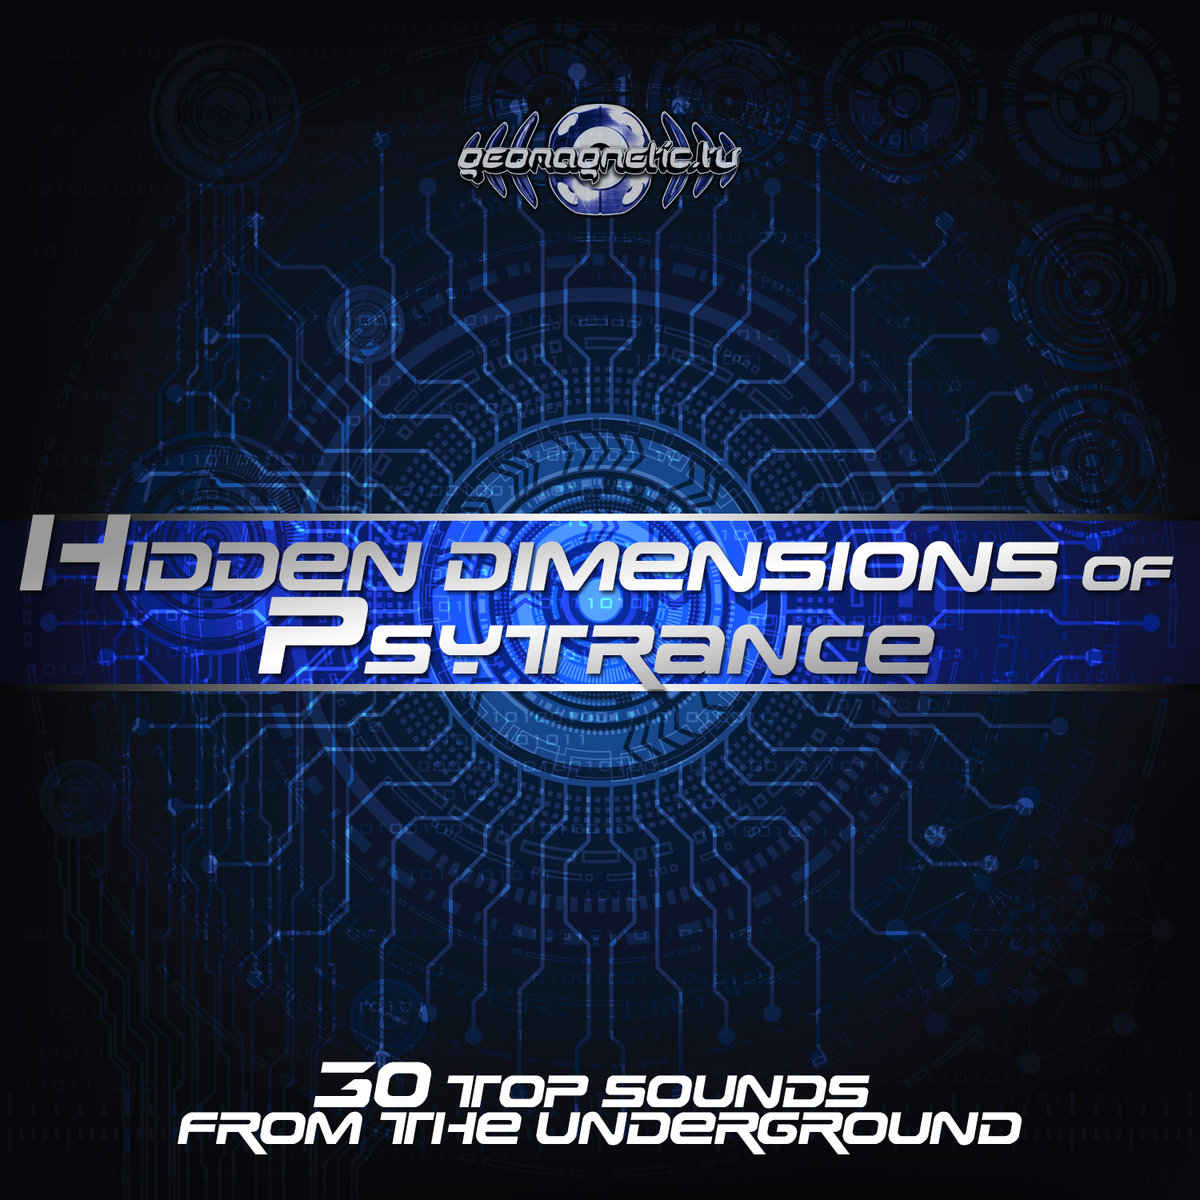 Subliminal Insane - Overloaded Energy @ 'Various Artists - Hidden Dimensions of Psytrance (30 Top Sounds From The Underground)' album (electronic, goa)